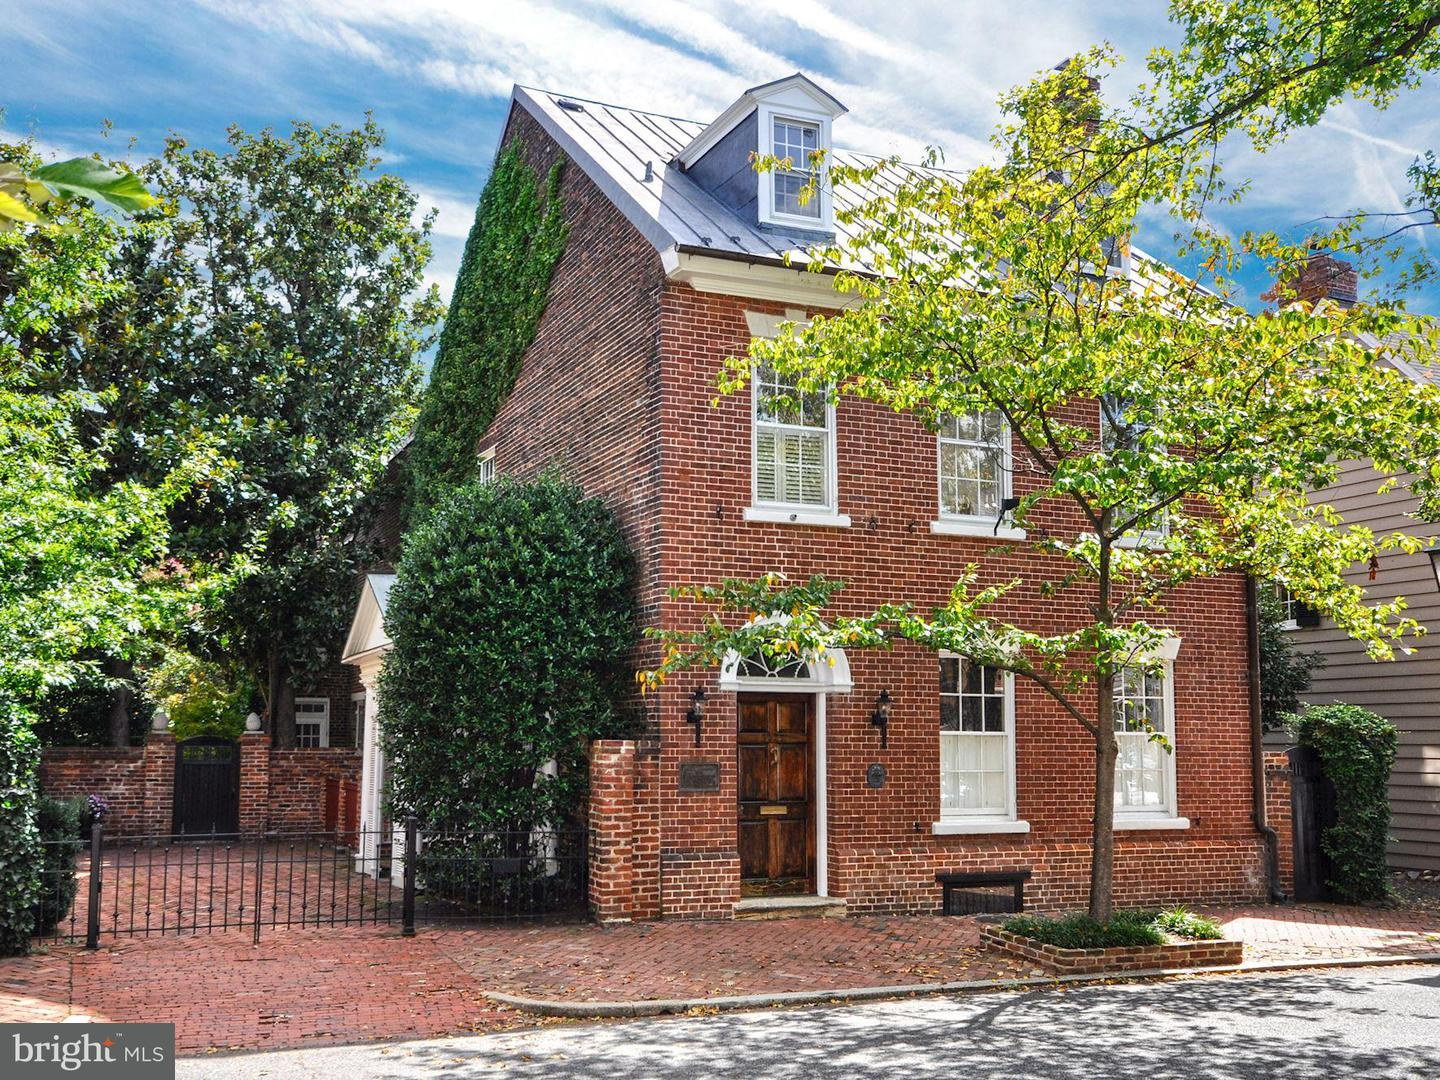 Single Family for Sale at 224 Lee St S Alexandria, Virginia 22314 United States